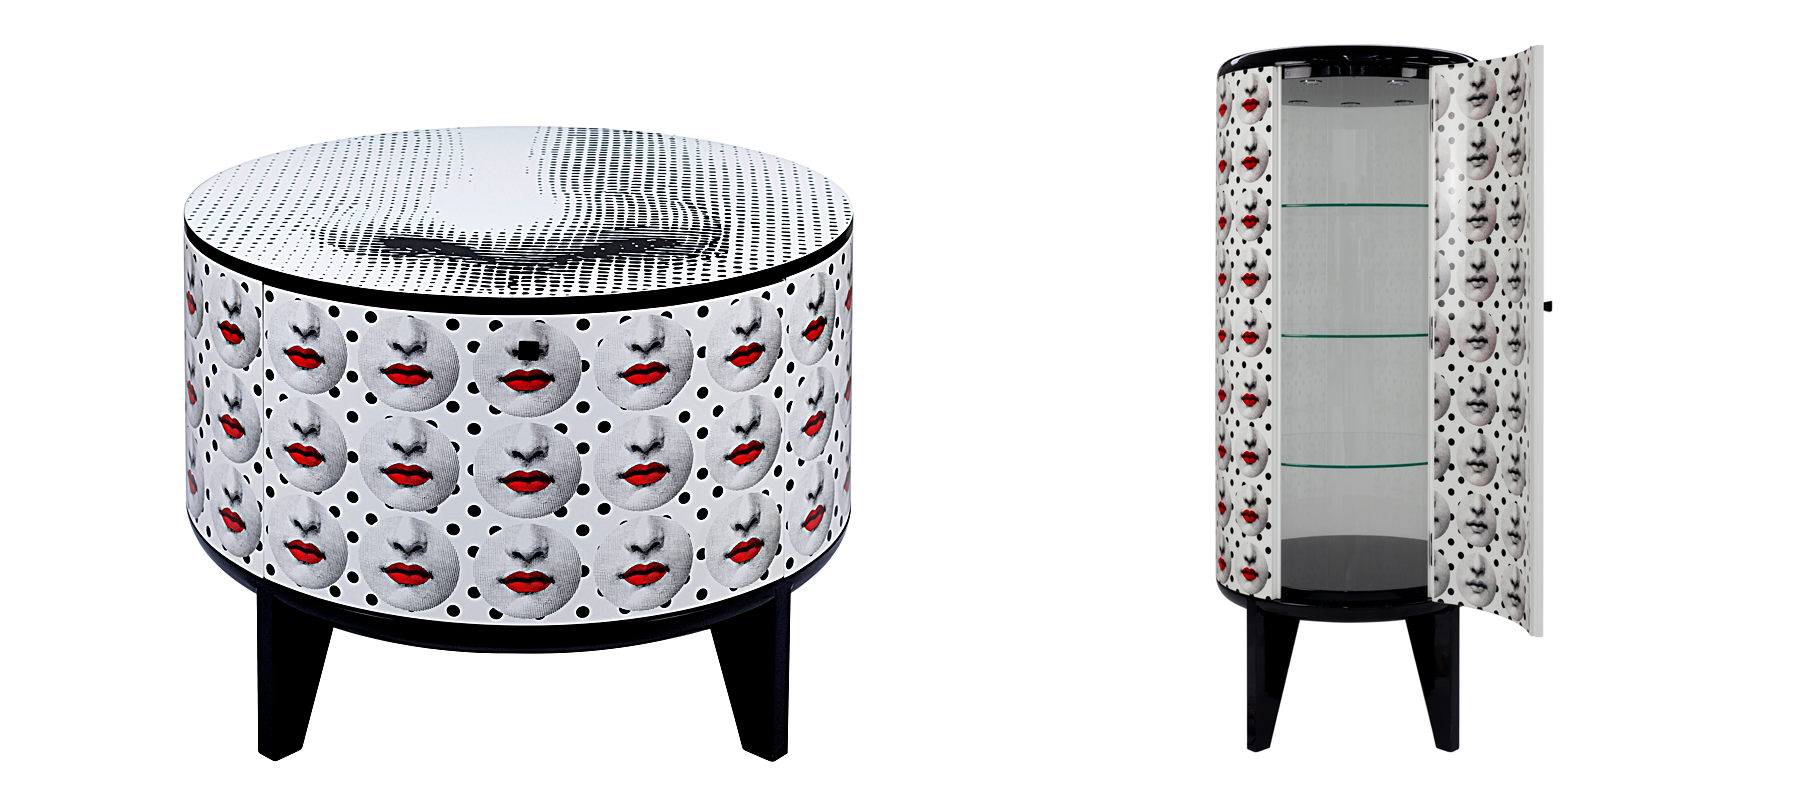 "Fornasetti ""Tamburo Comme des Fornà"" collection. (photo: courtesy)"